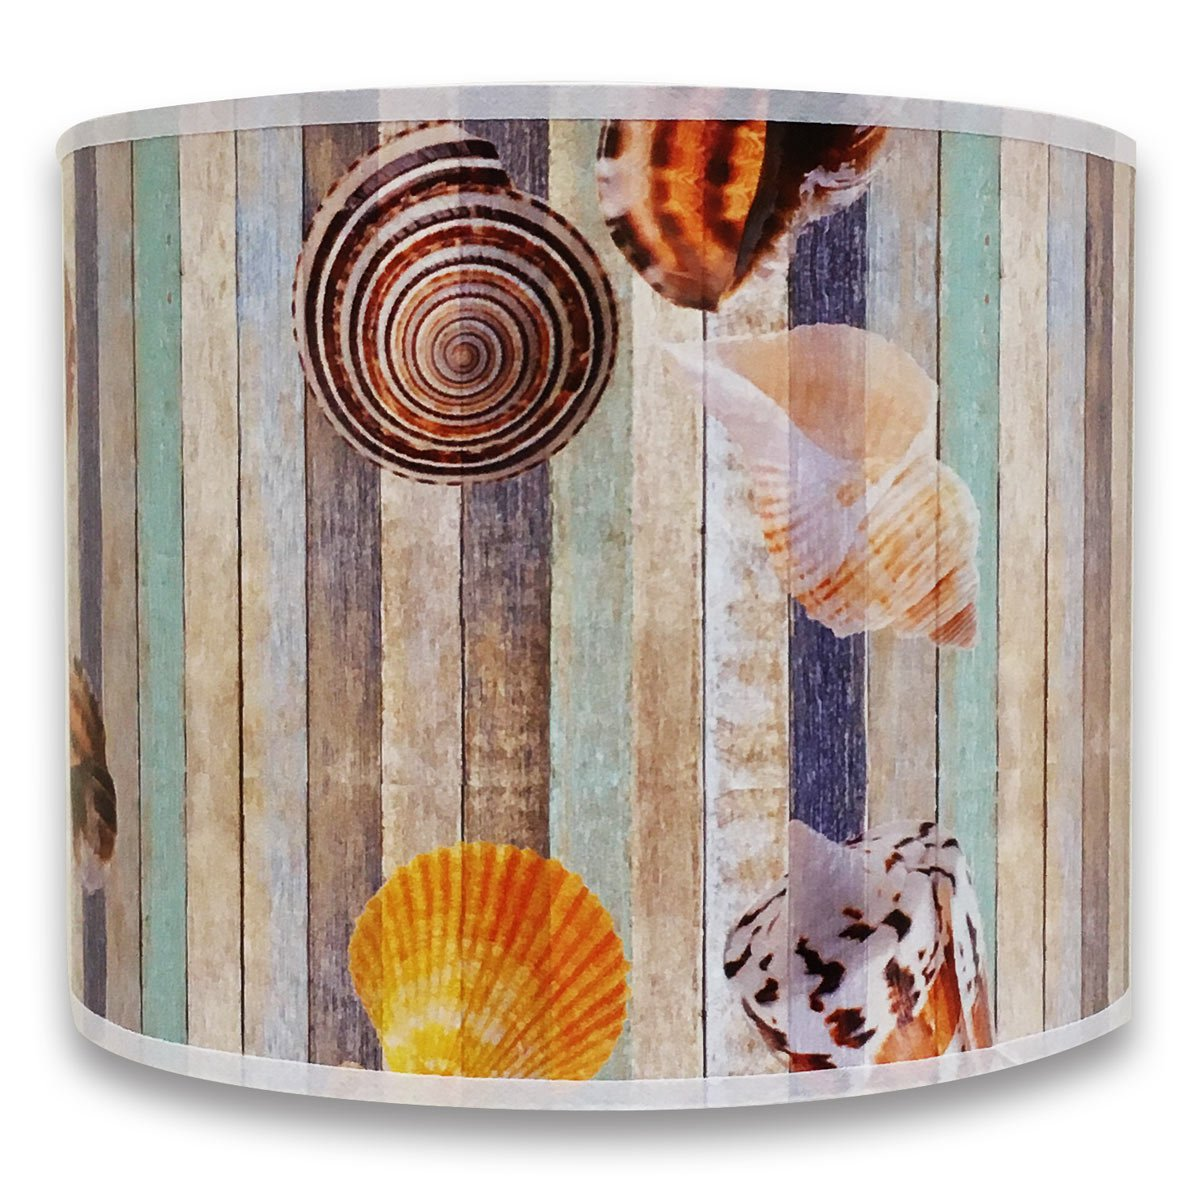 Royal Designs Modern Trendy Decorative Handmade Lamp Shade - Made in USA - Sea Shell on Colorful Wood Design - 10 x 10 x 8